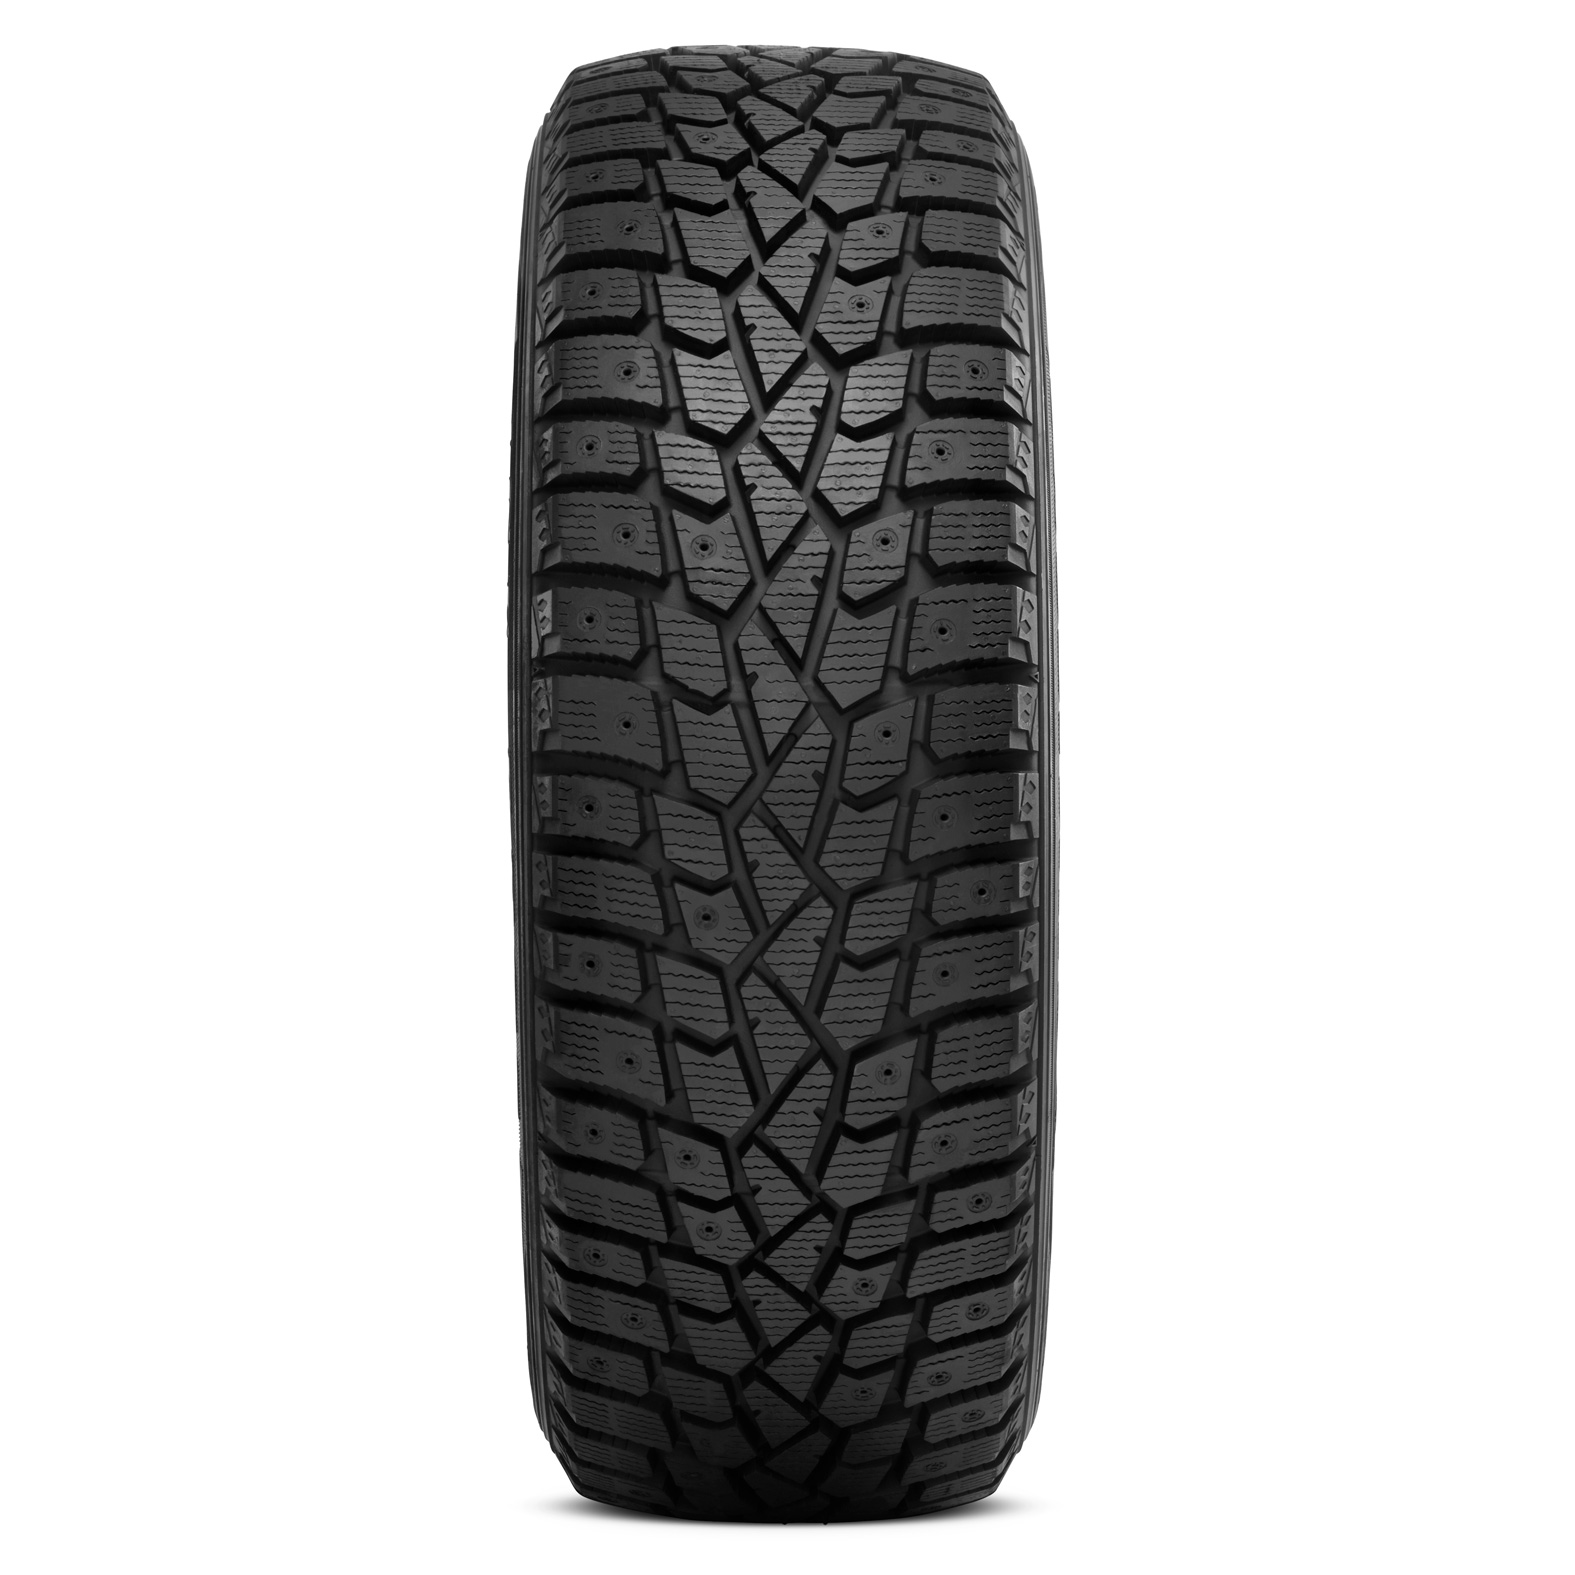 Sumitomo Ice Edge Studable-Winter Radial Tire 205//65R15 94T